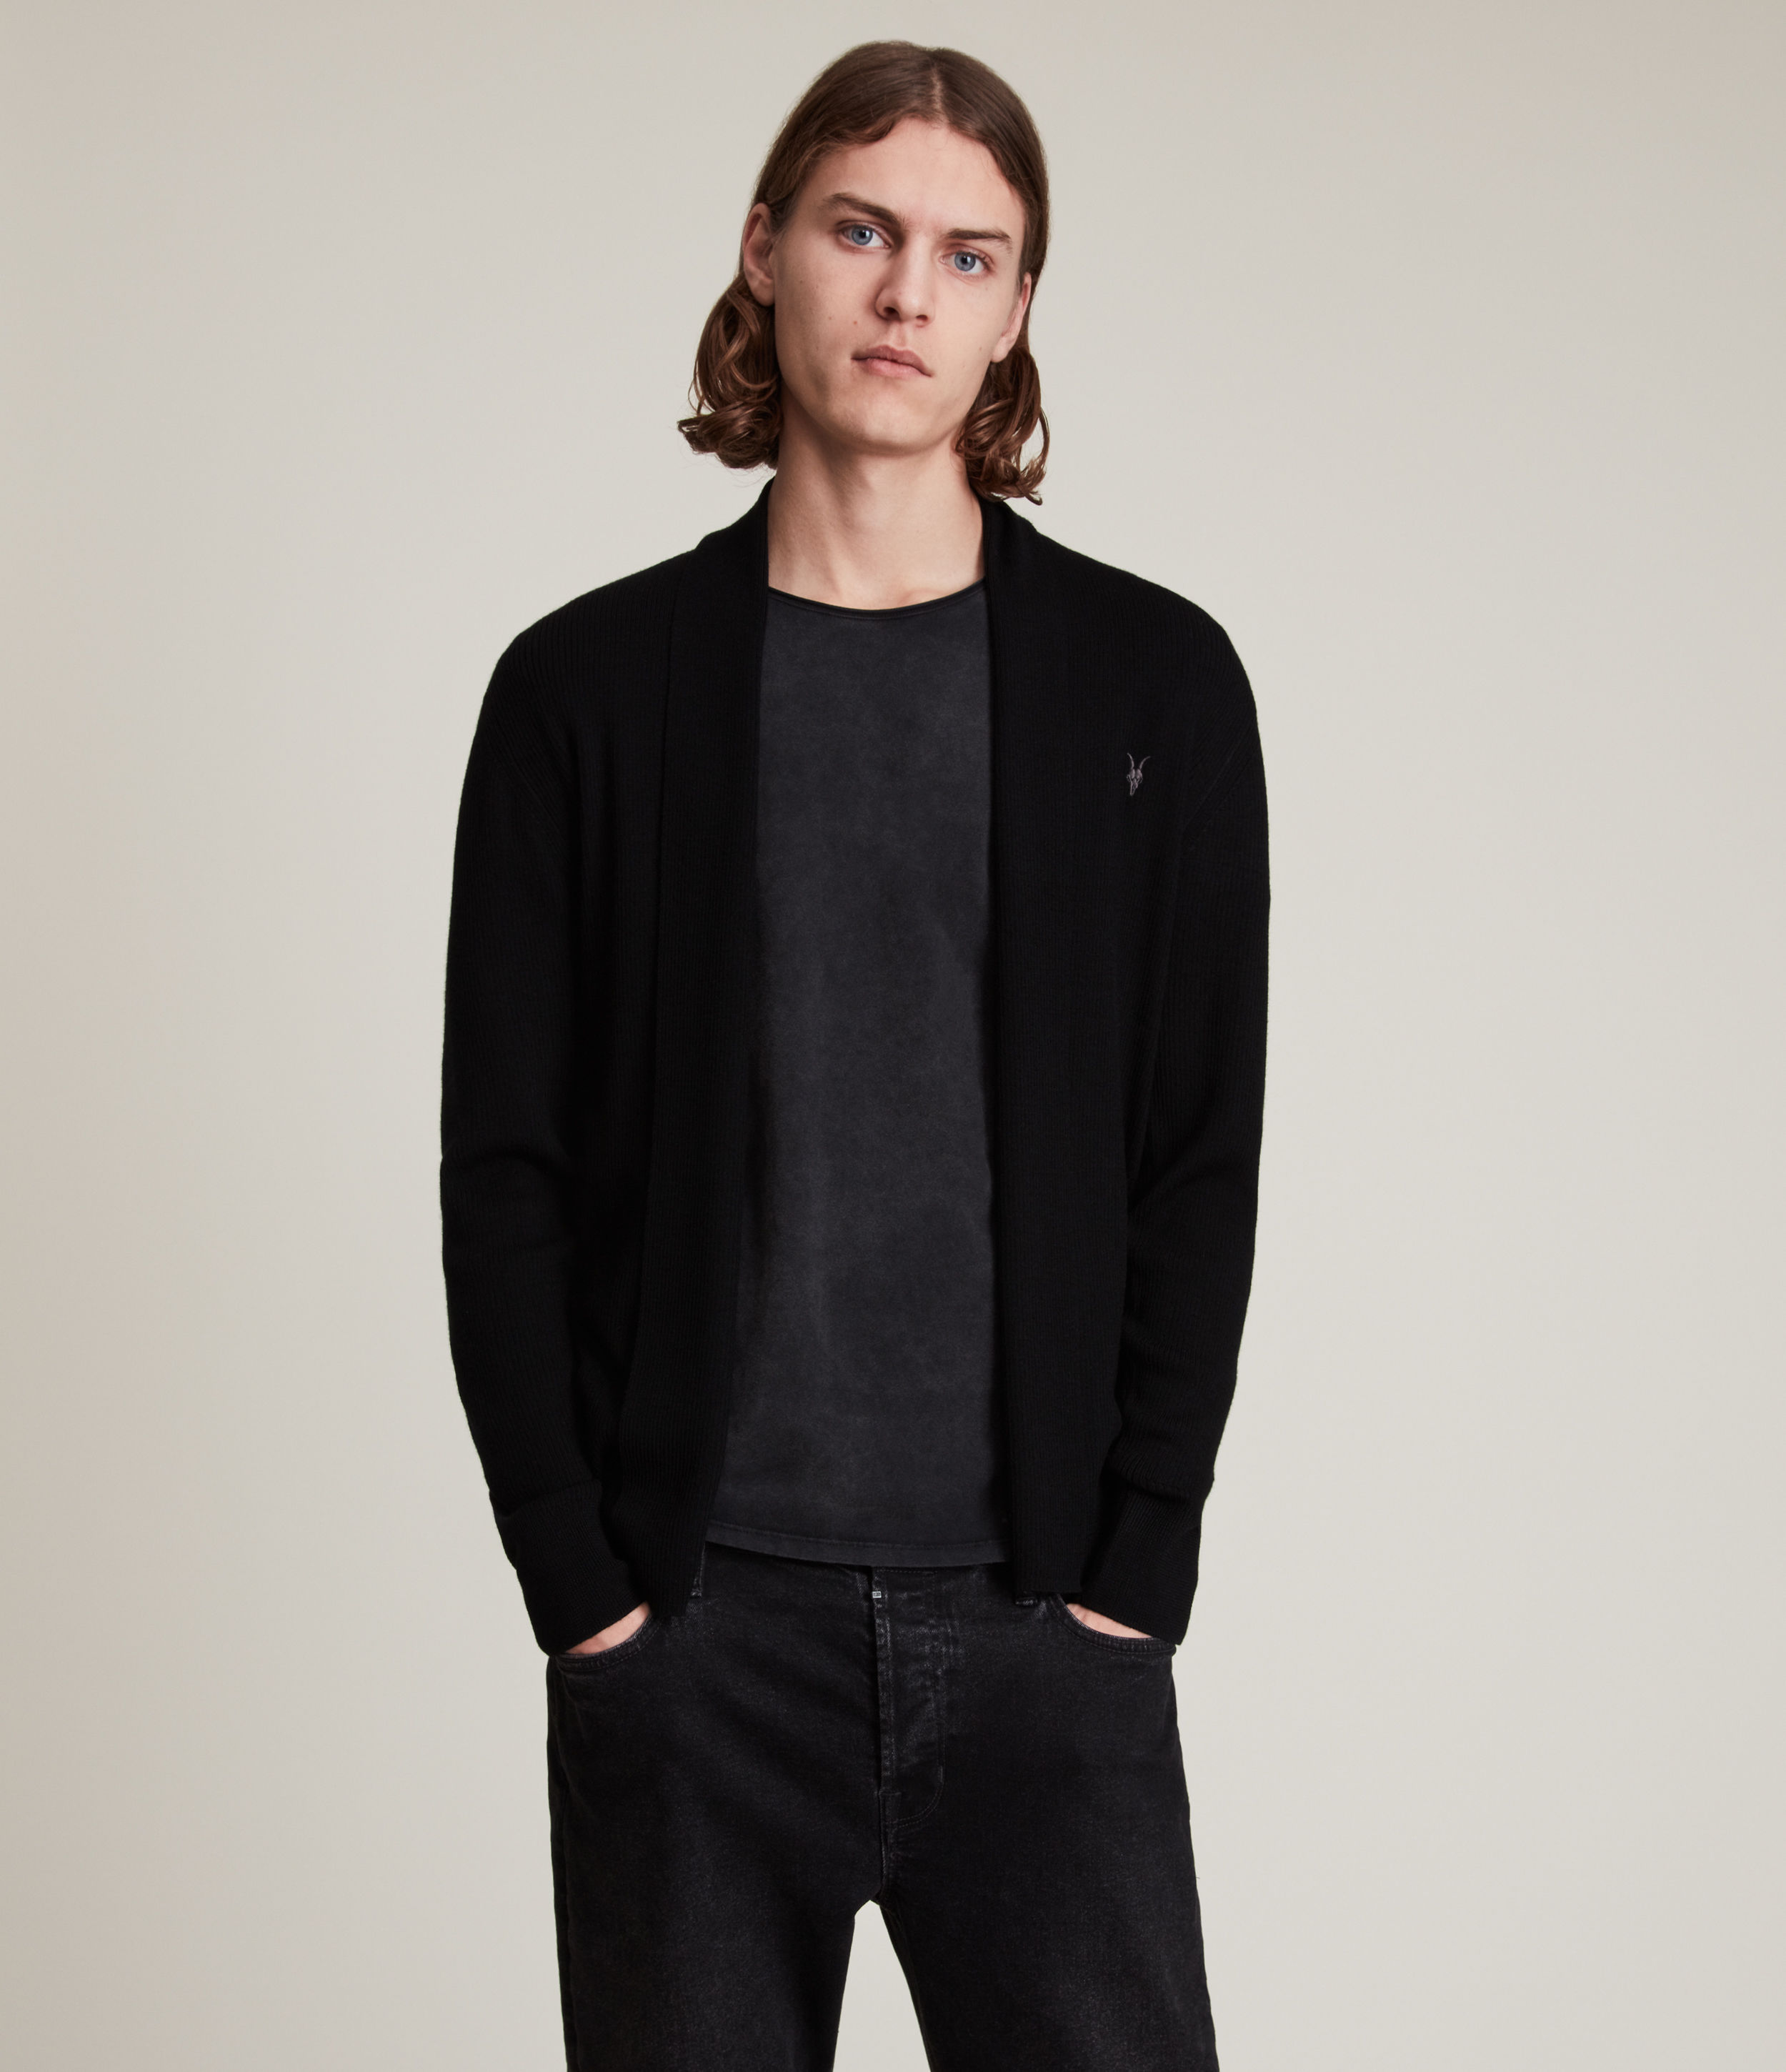 AllSaints Men's Merino Wool Lightweight Mode Cardigan, Black, Size: S